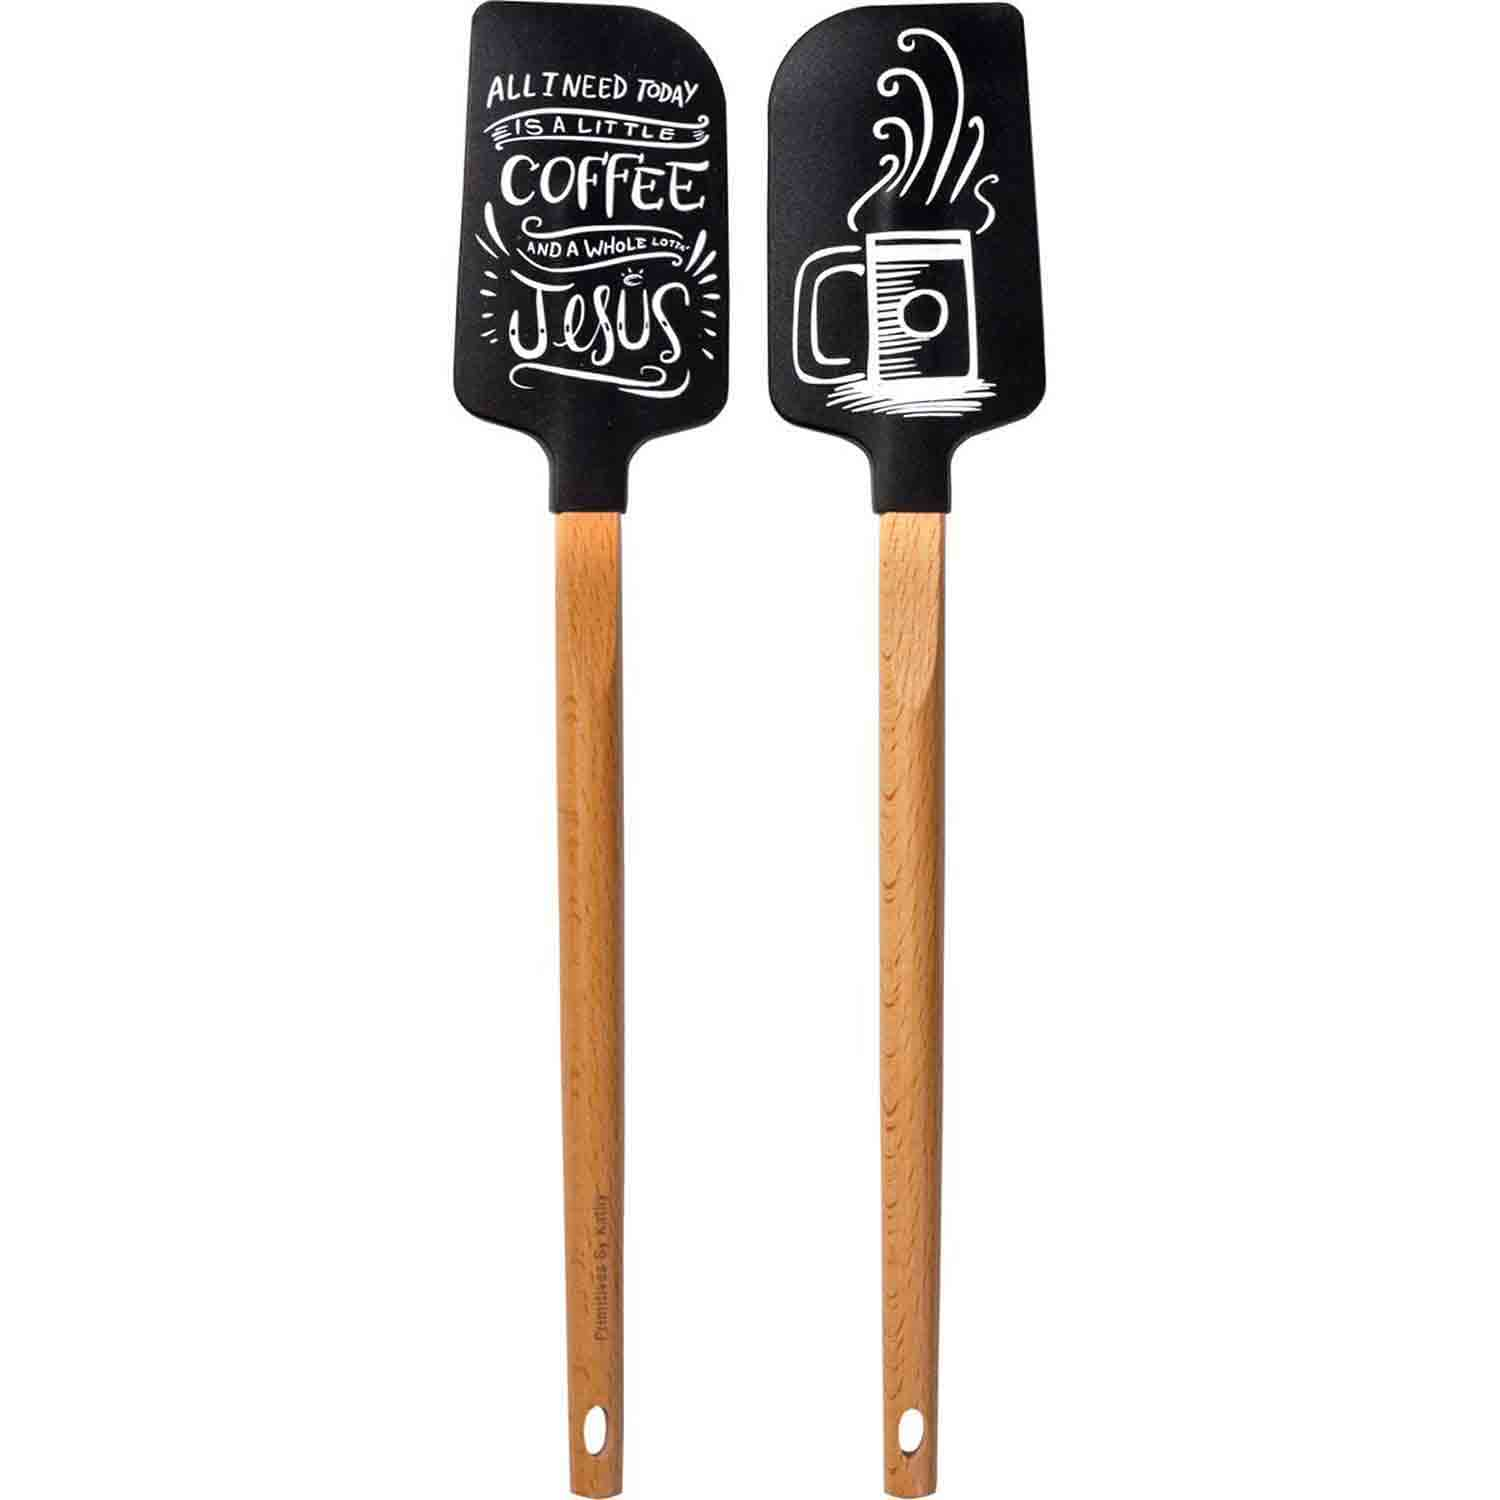 Coffee And Jesus Kitchen Spatula